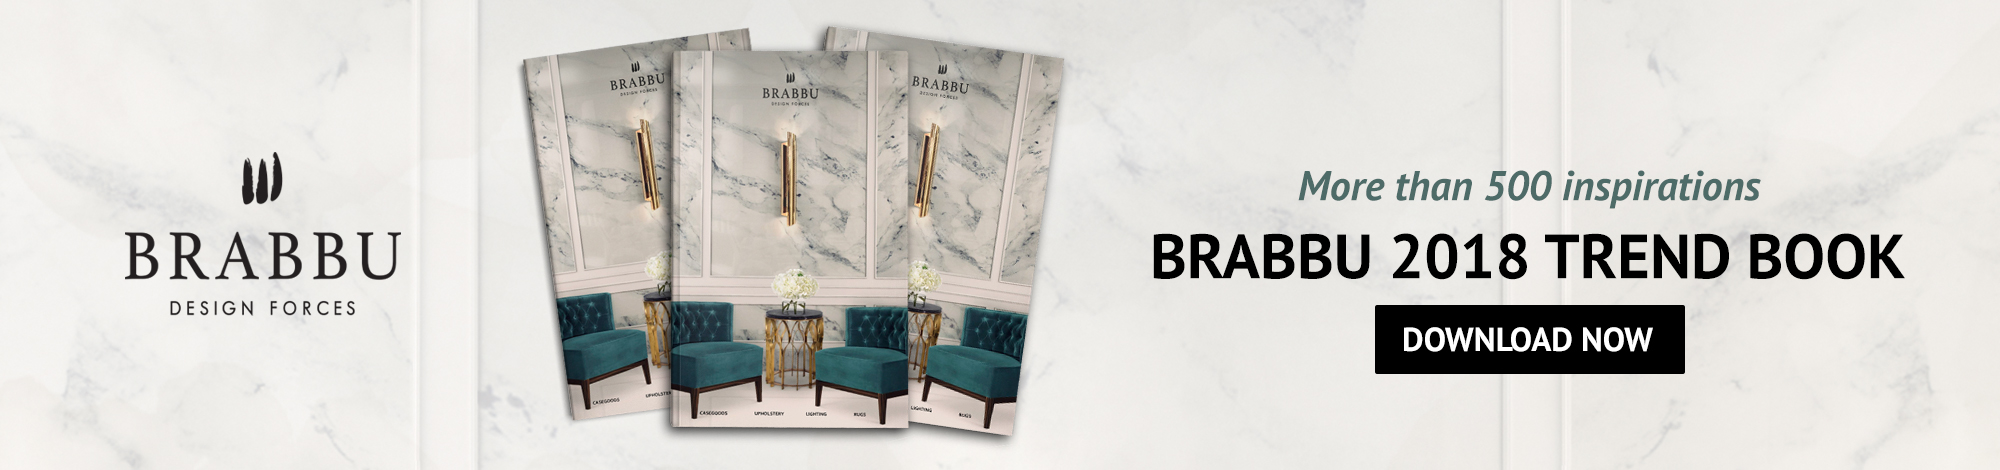 BRABBU Catalogue maison et objet 2017 Where To Eat In Paris During Maison et Objet 2017: Le Flandrin  1C5EB82328DCFD5BD10428DB124BD945082C079483CACCDD2D pimgpsh fullsize distr